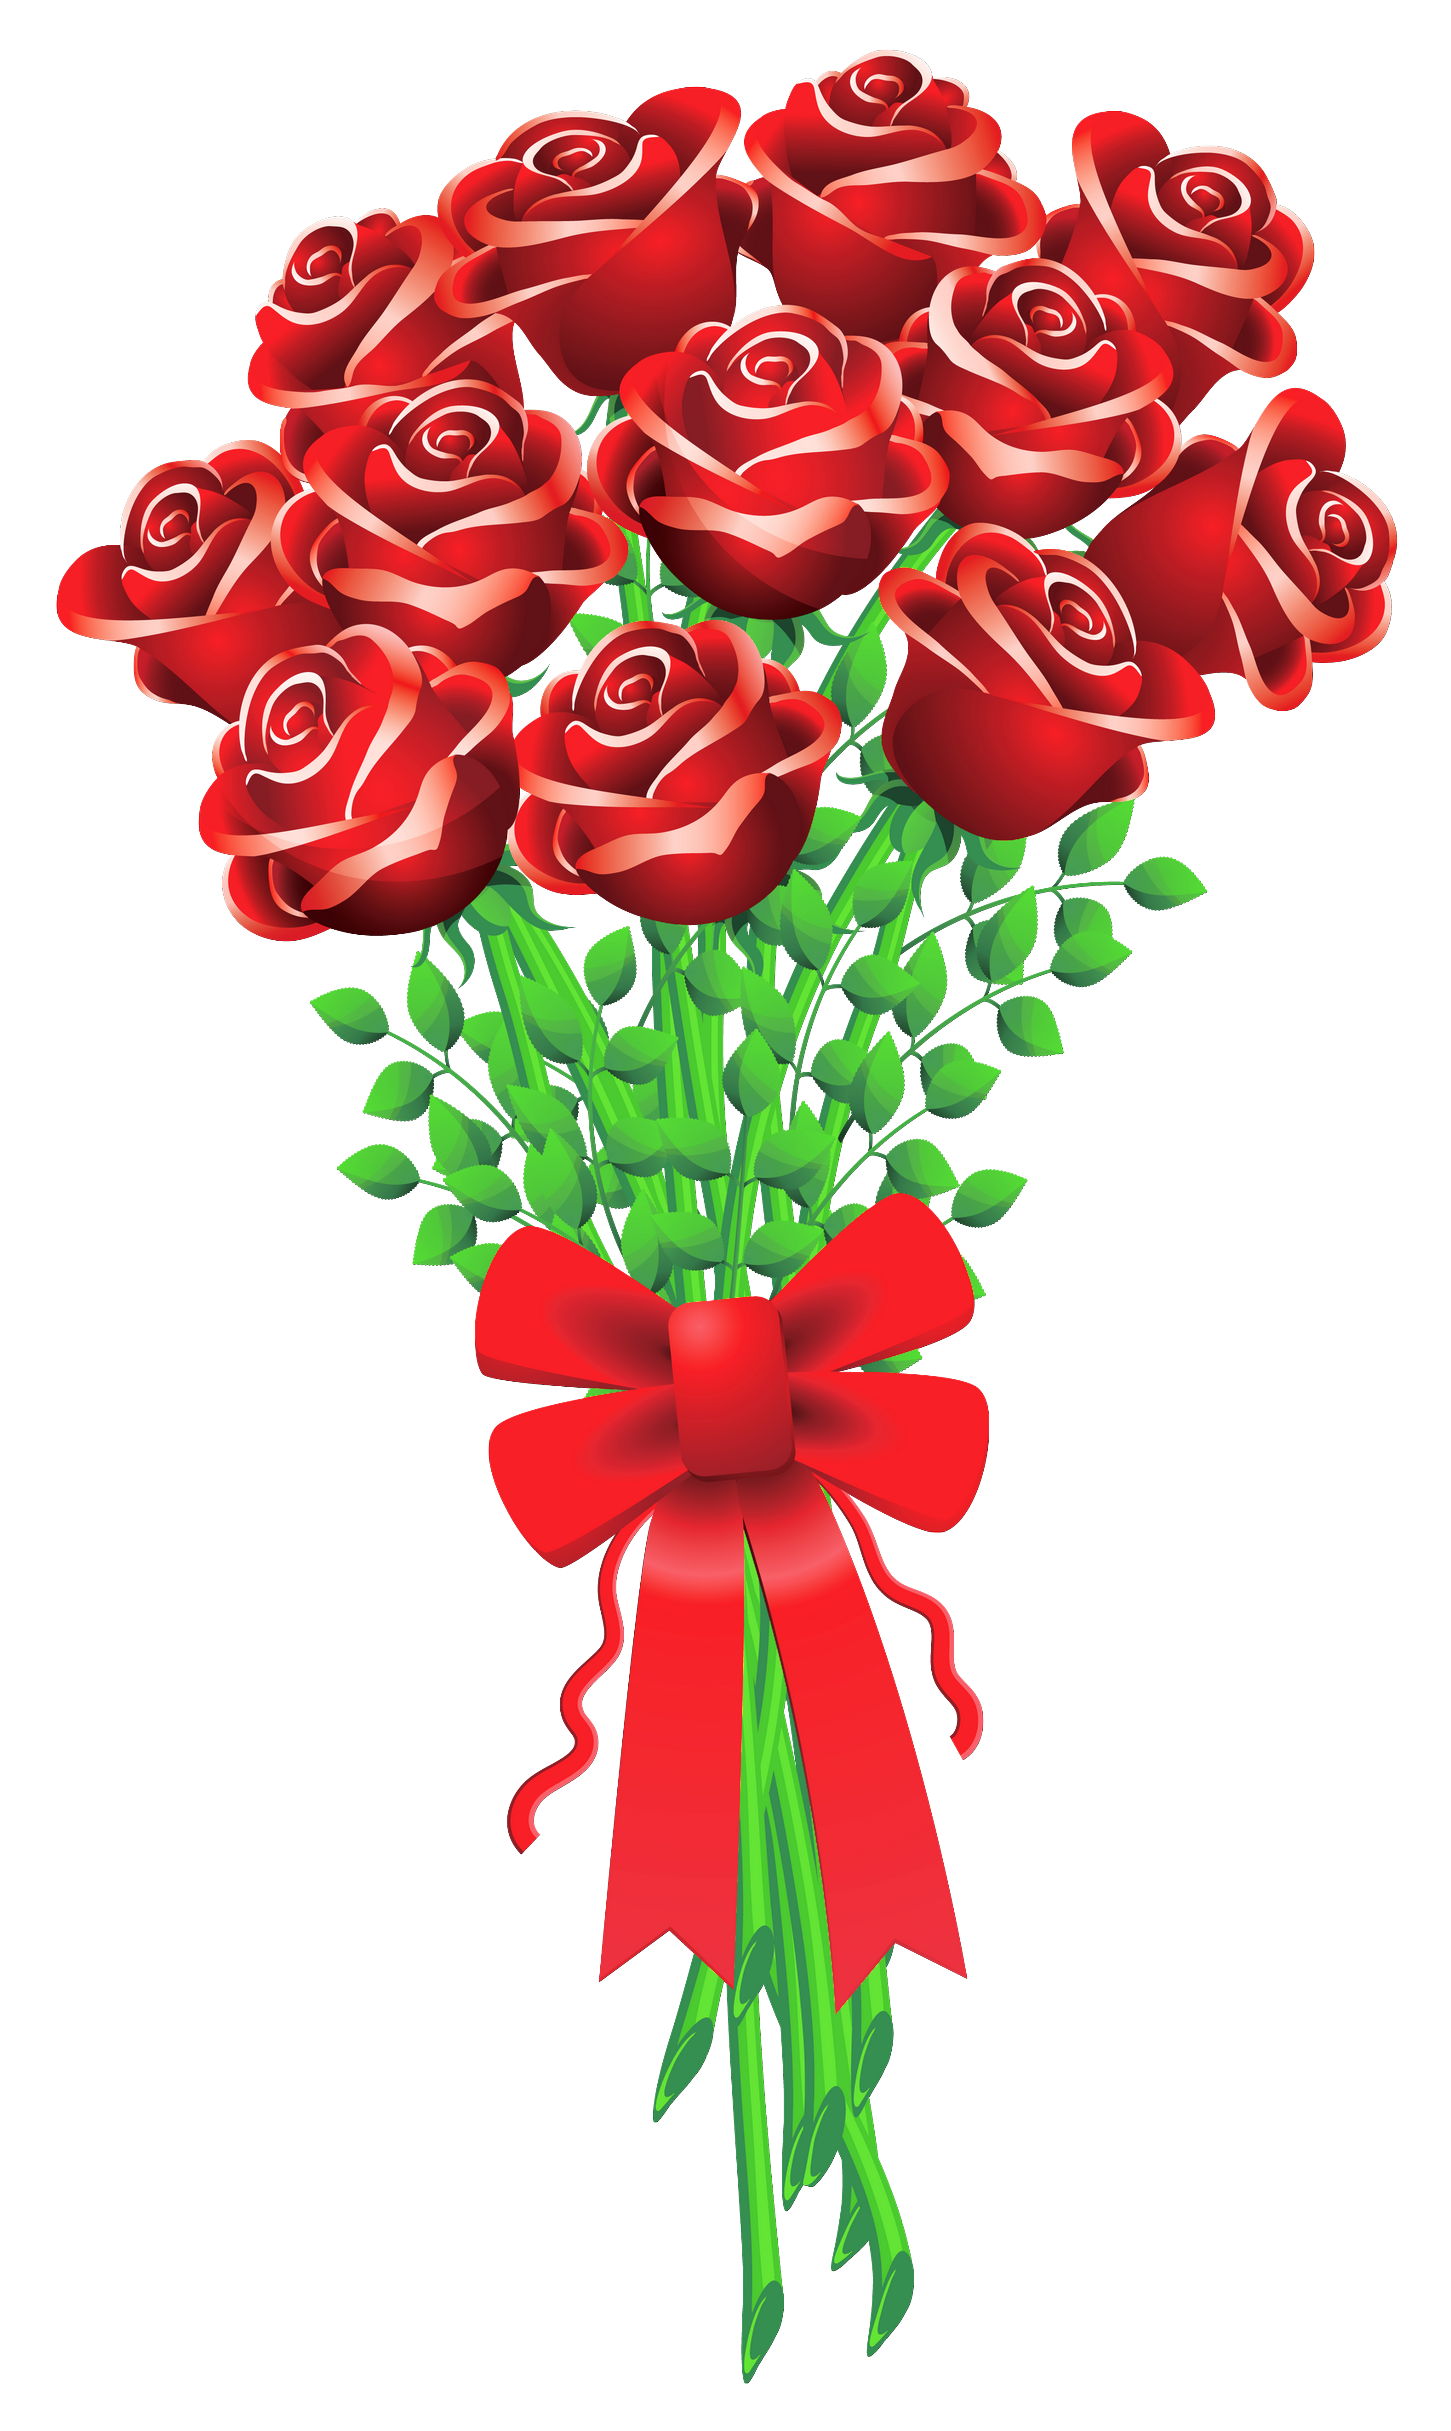 Red Flower clipart valentine rose #2